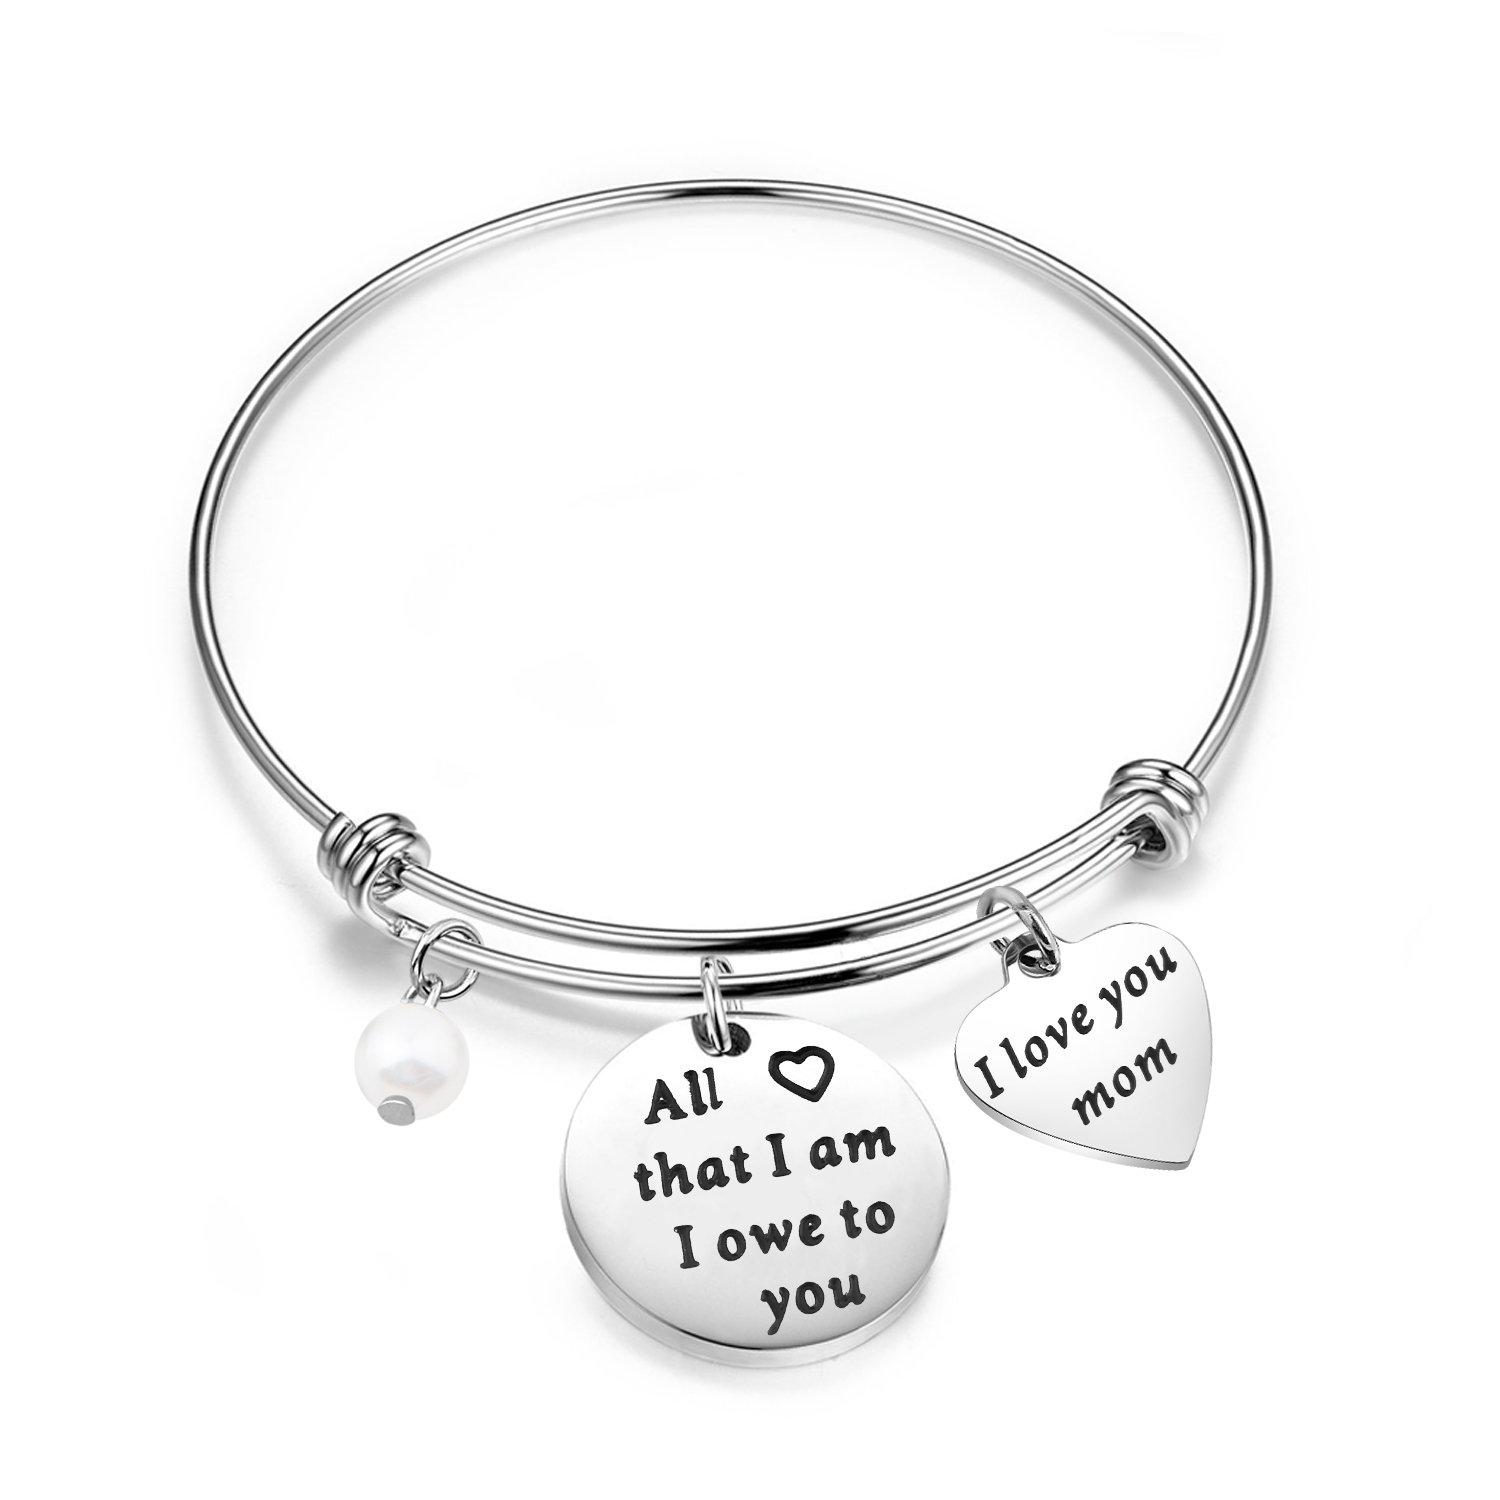 Lywjyb Birdgot Mom Bracelet All That I am I Owe To You Mother's Day Gift From Daughter or Son (Mom Bracelet)